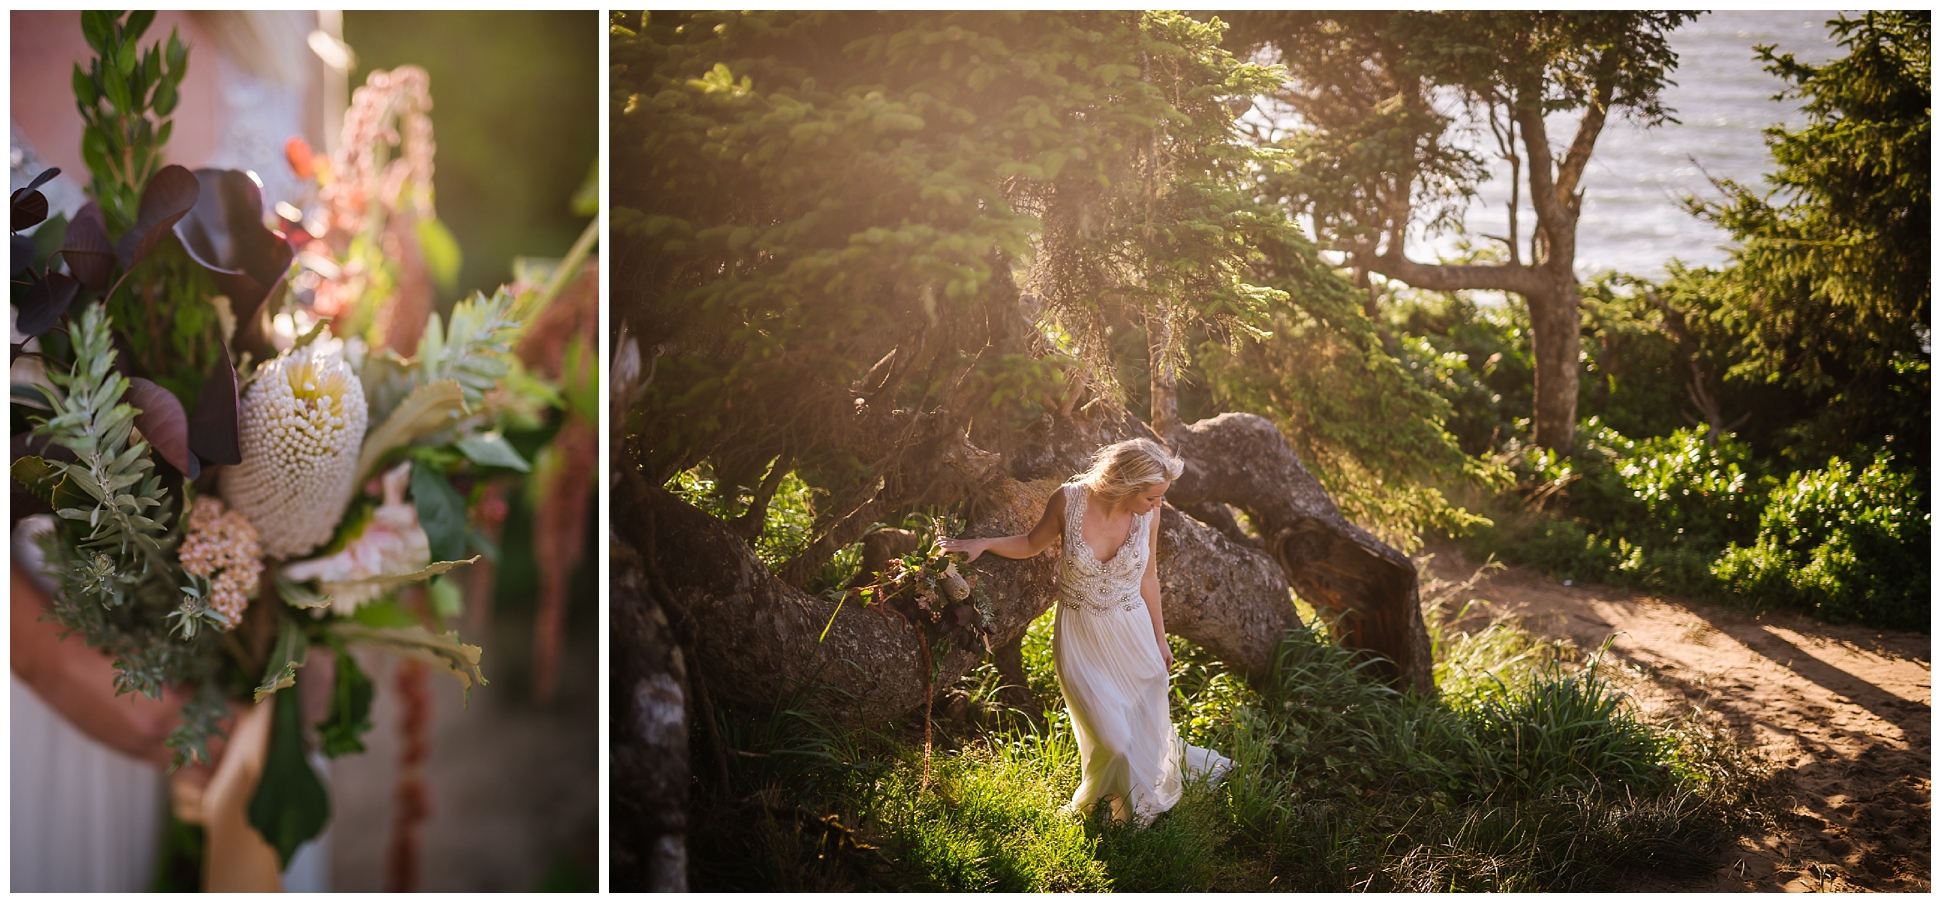 Cape-kiwanda-bridal-portrait-destination-wedding-photographer_0022.jpg